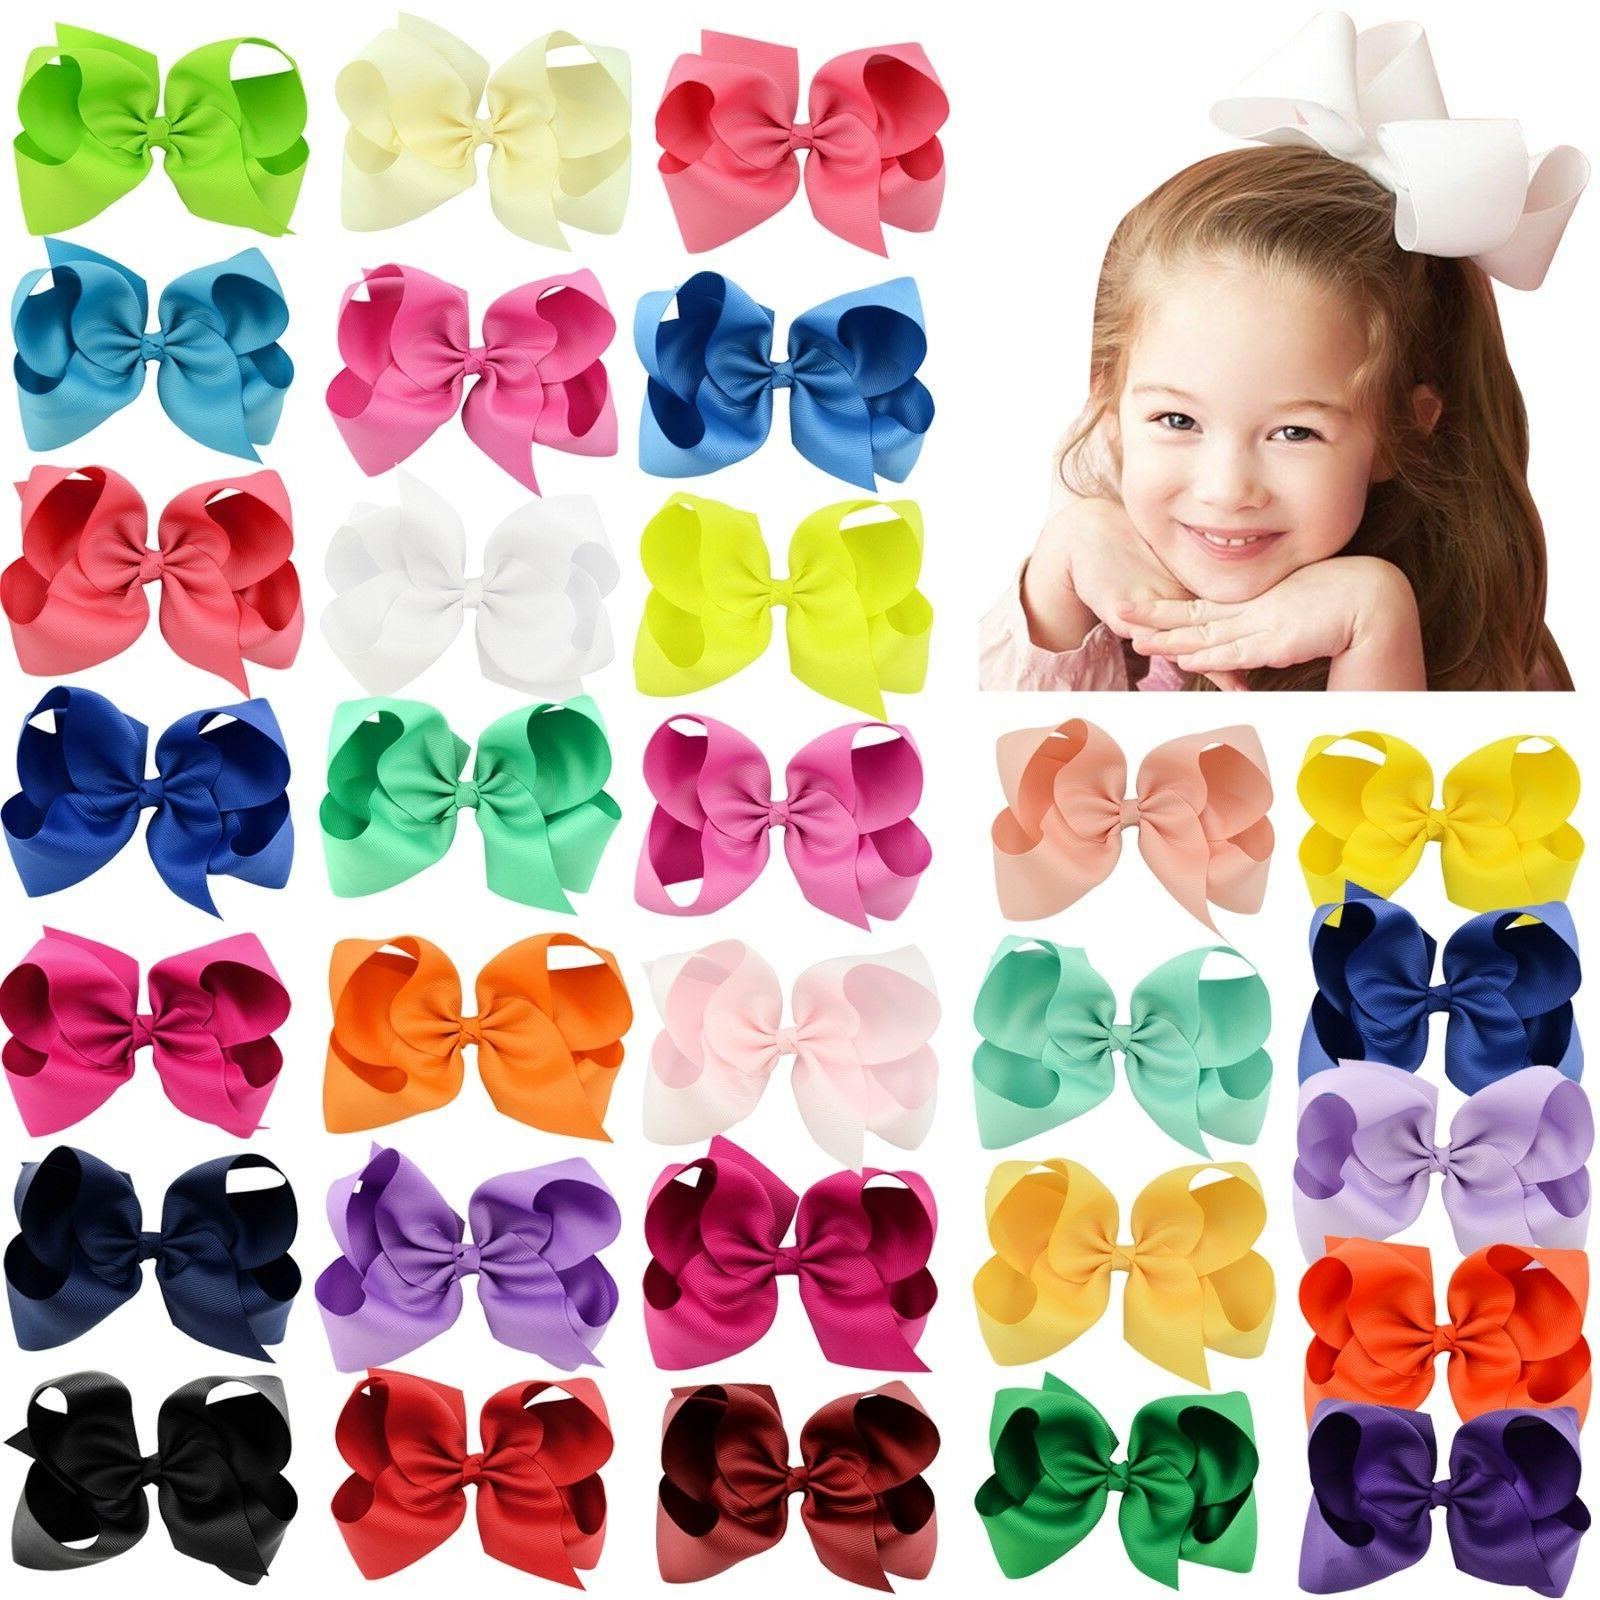 30pcs 6in big grosgrain ribbon hair bows